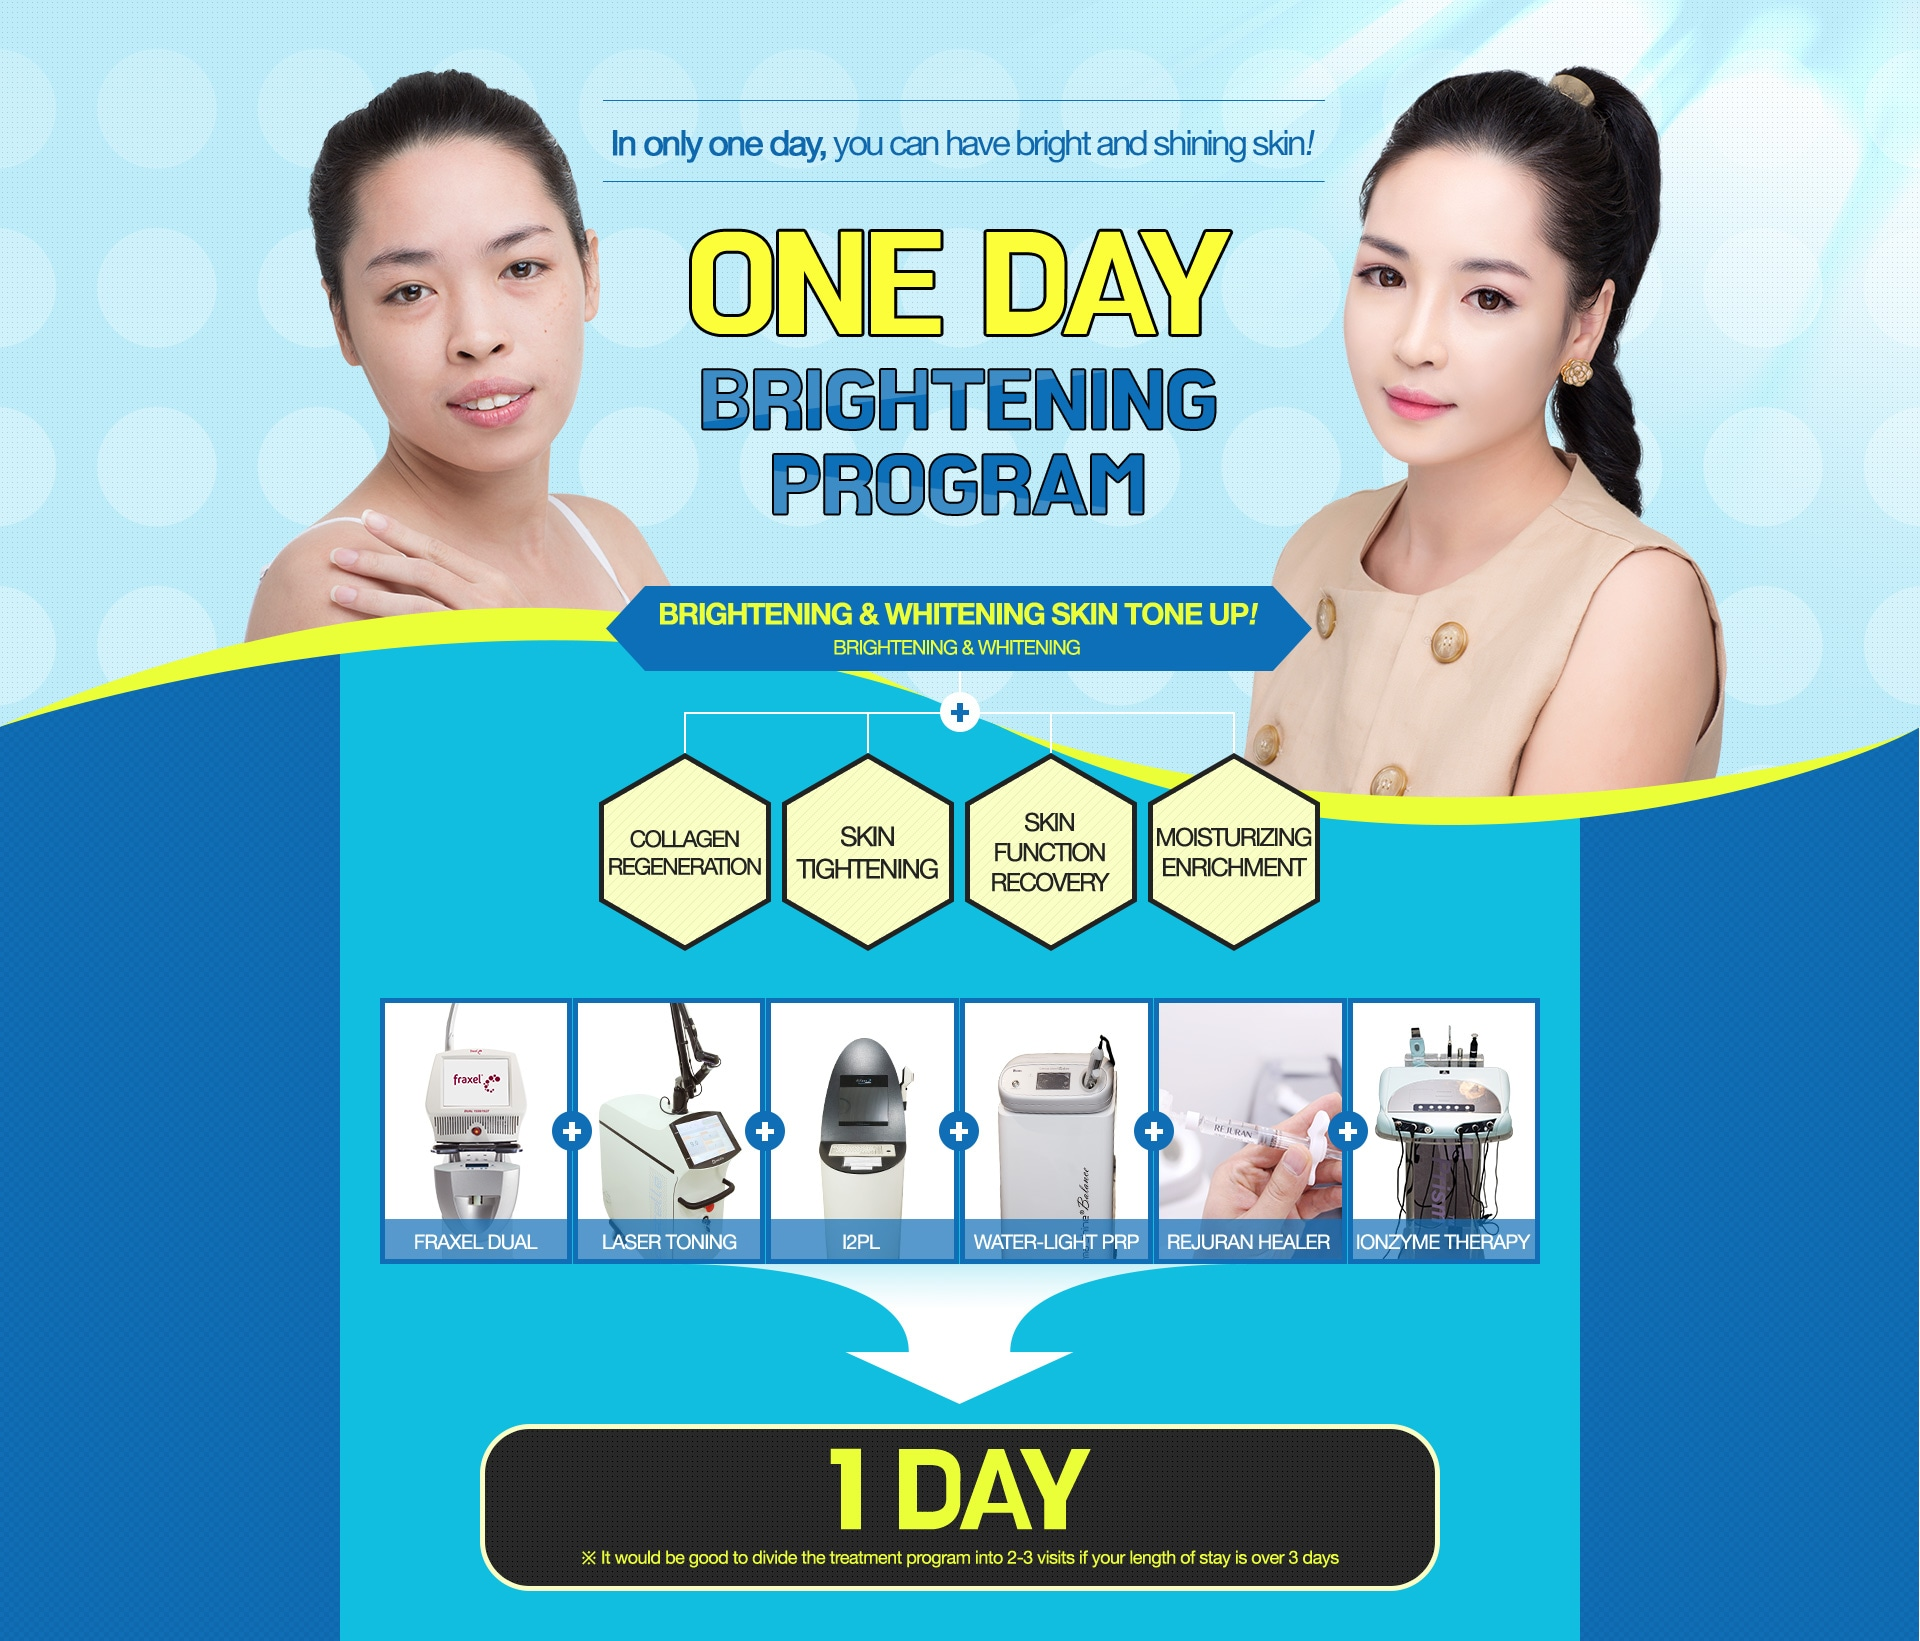 In only one day, you can have bright and shining skin! One Day Brightening Program